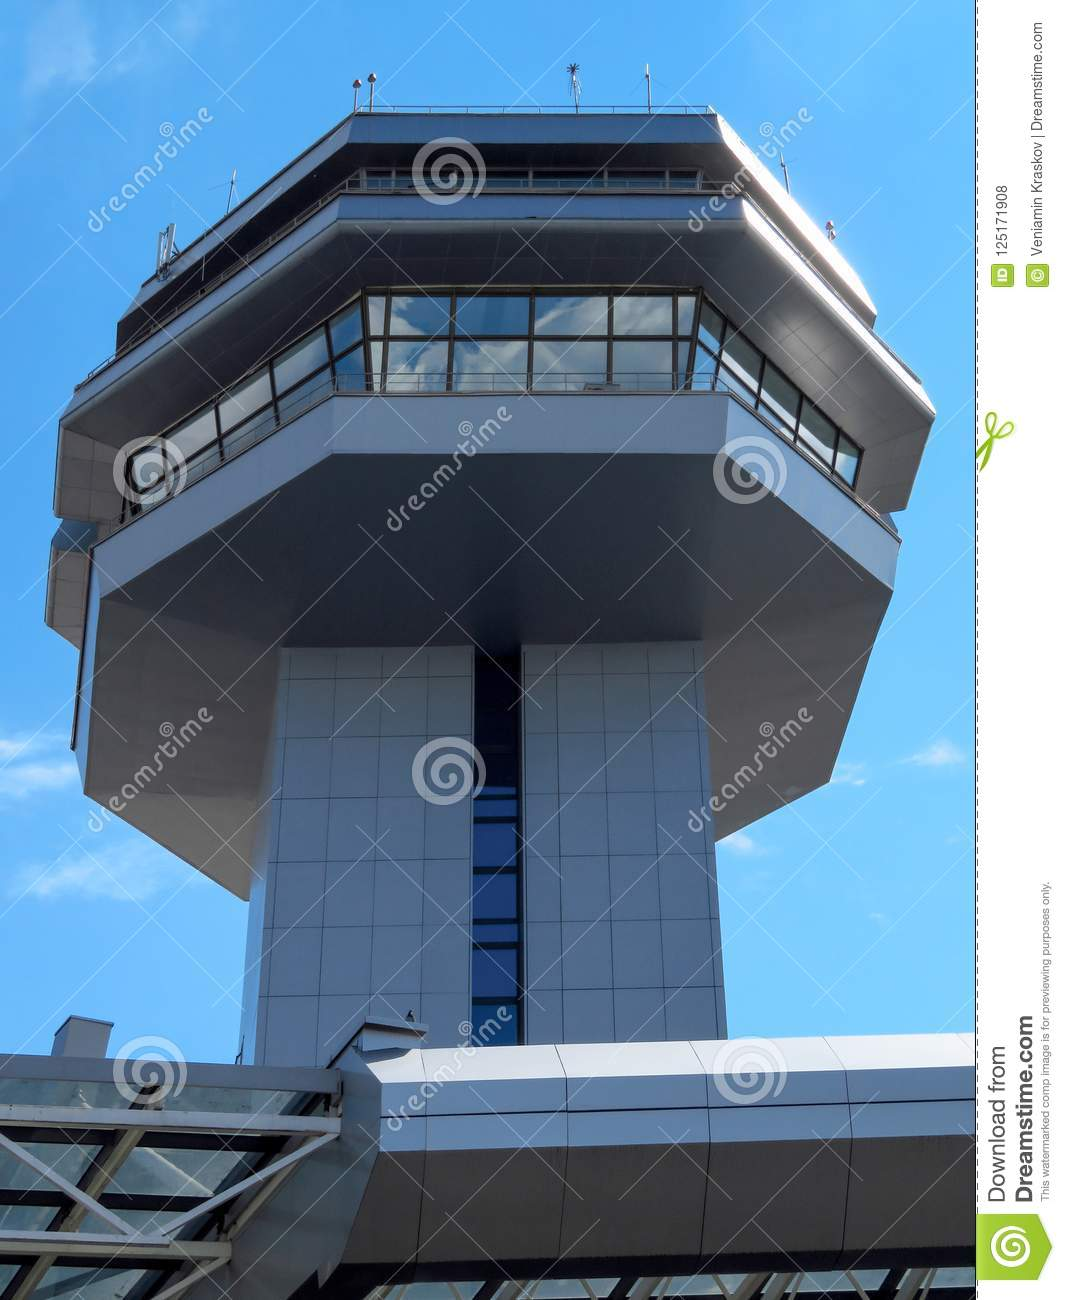 Minsk - Tower of National Airport